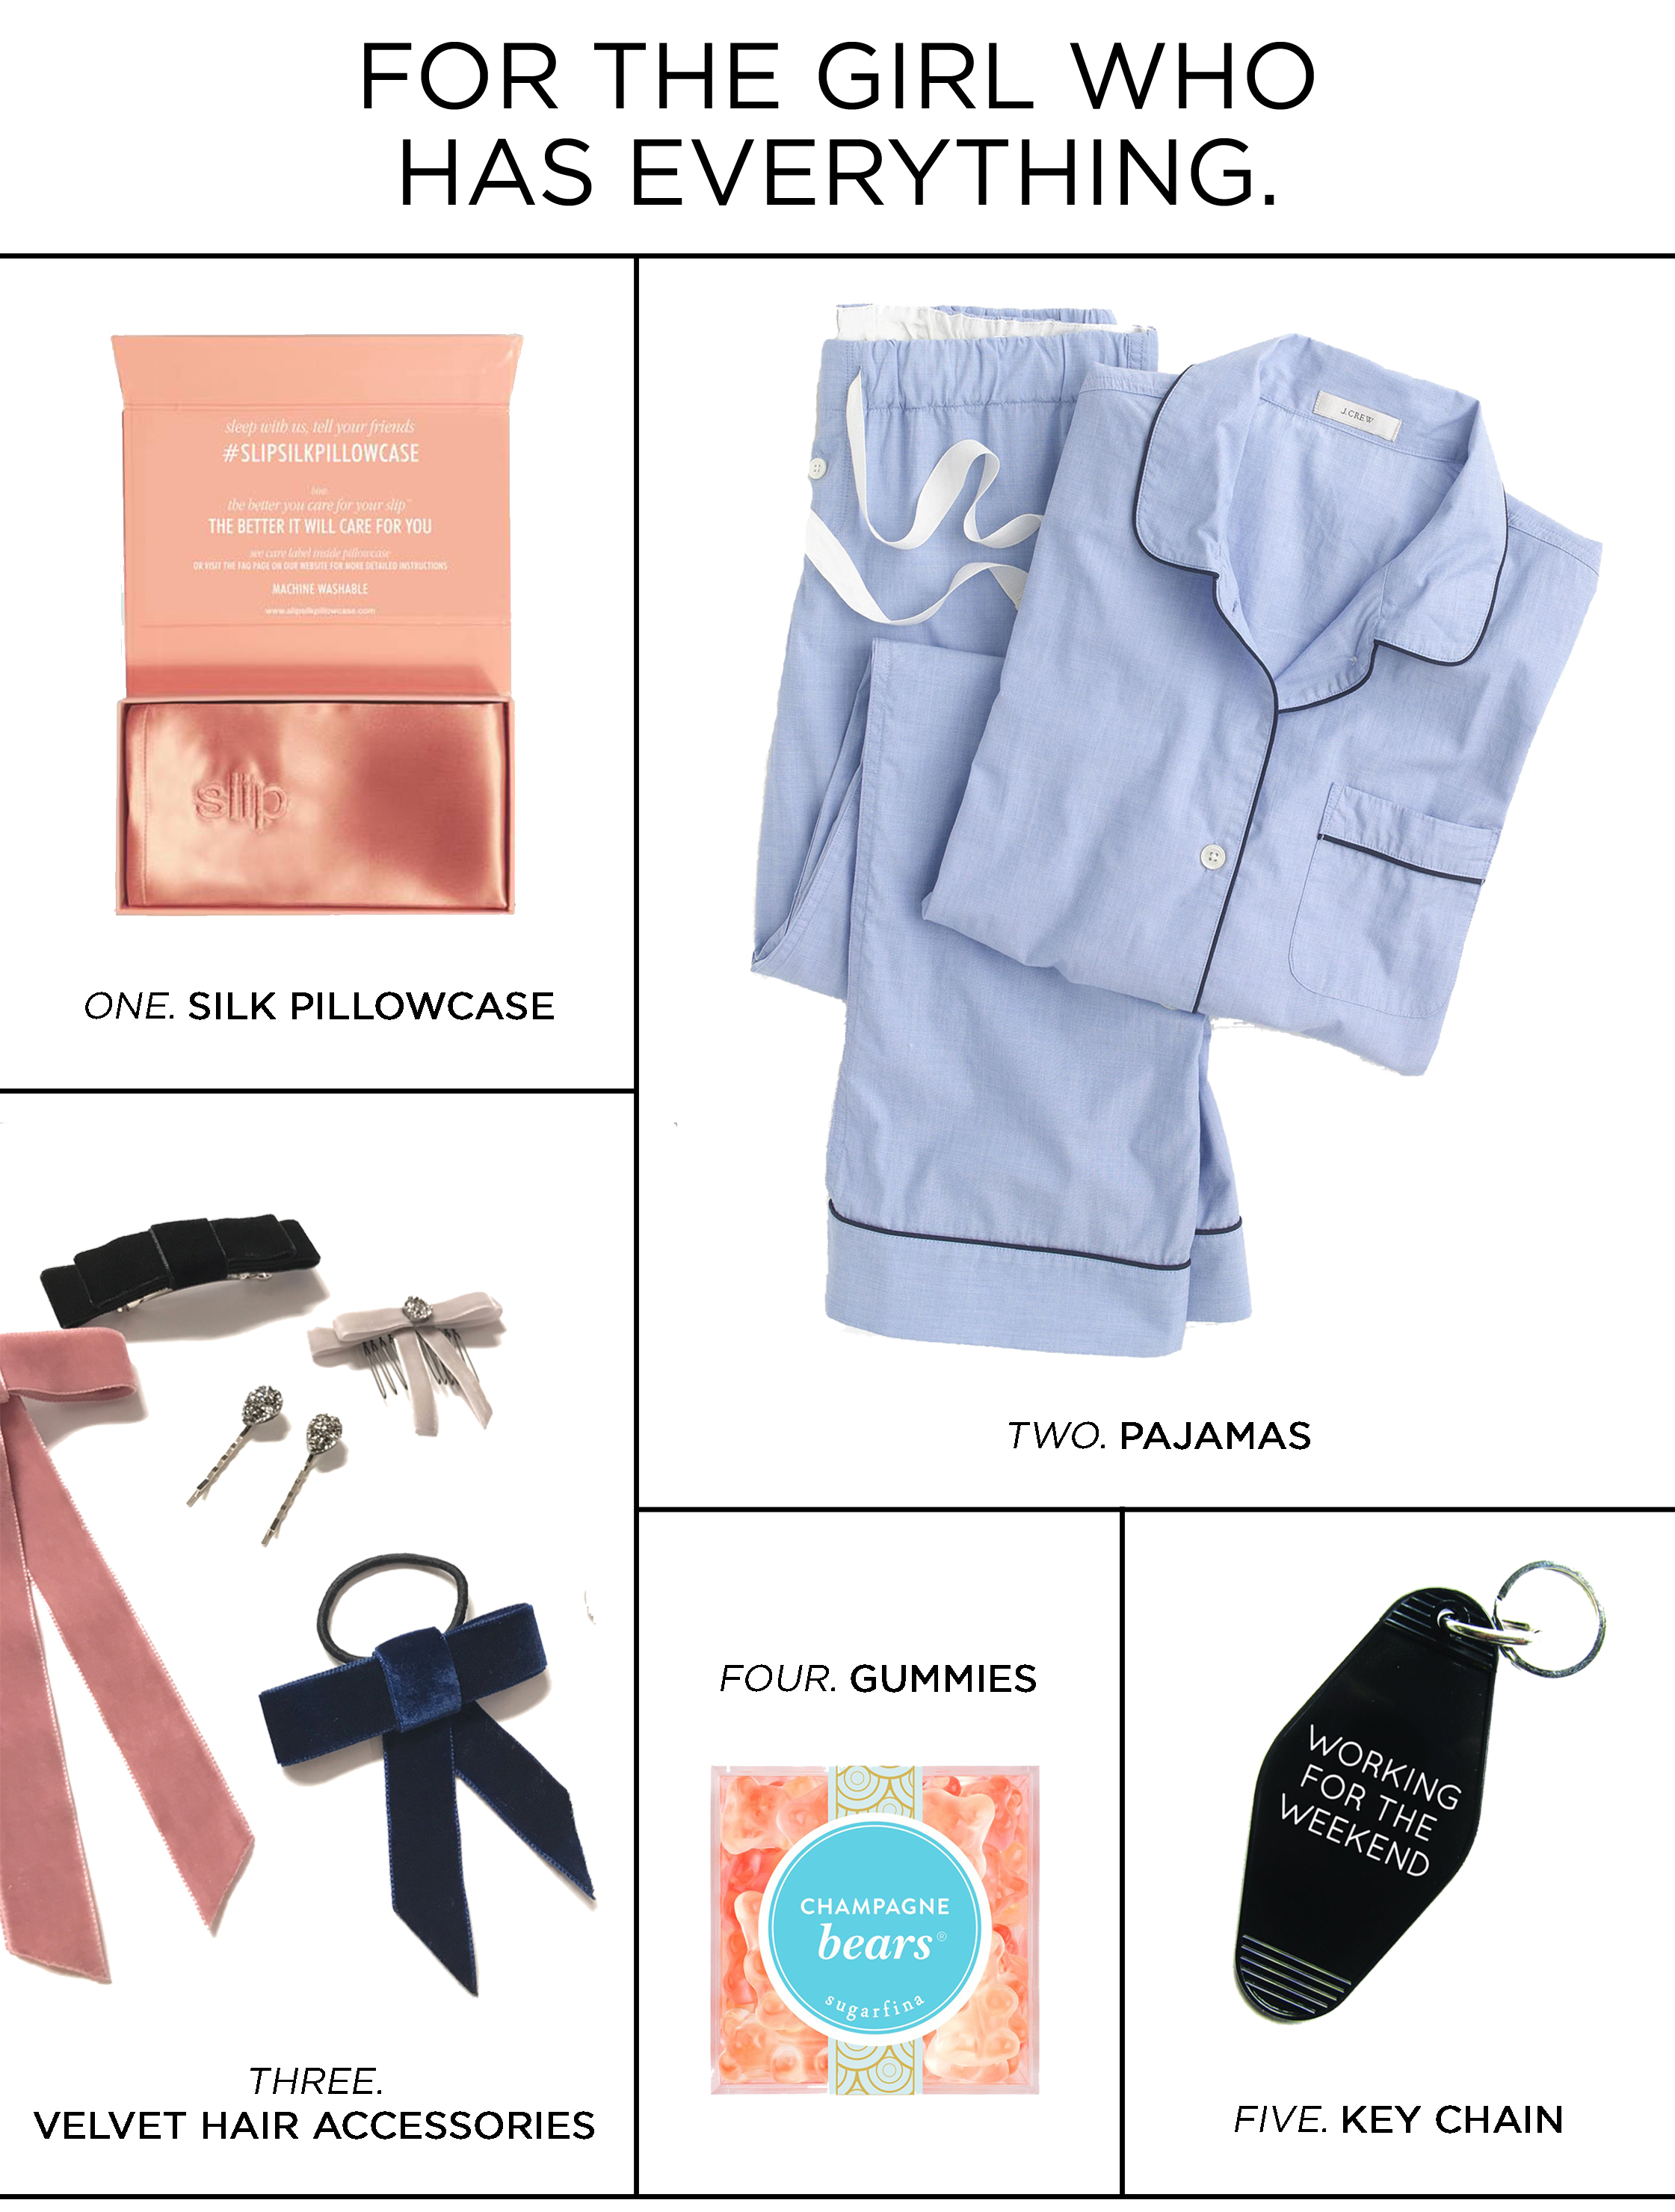 gift-guide-for-the-girl-who-has-everything.jpg